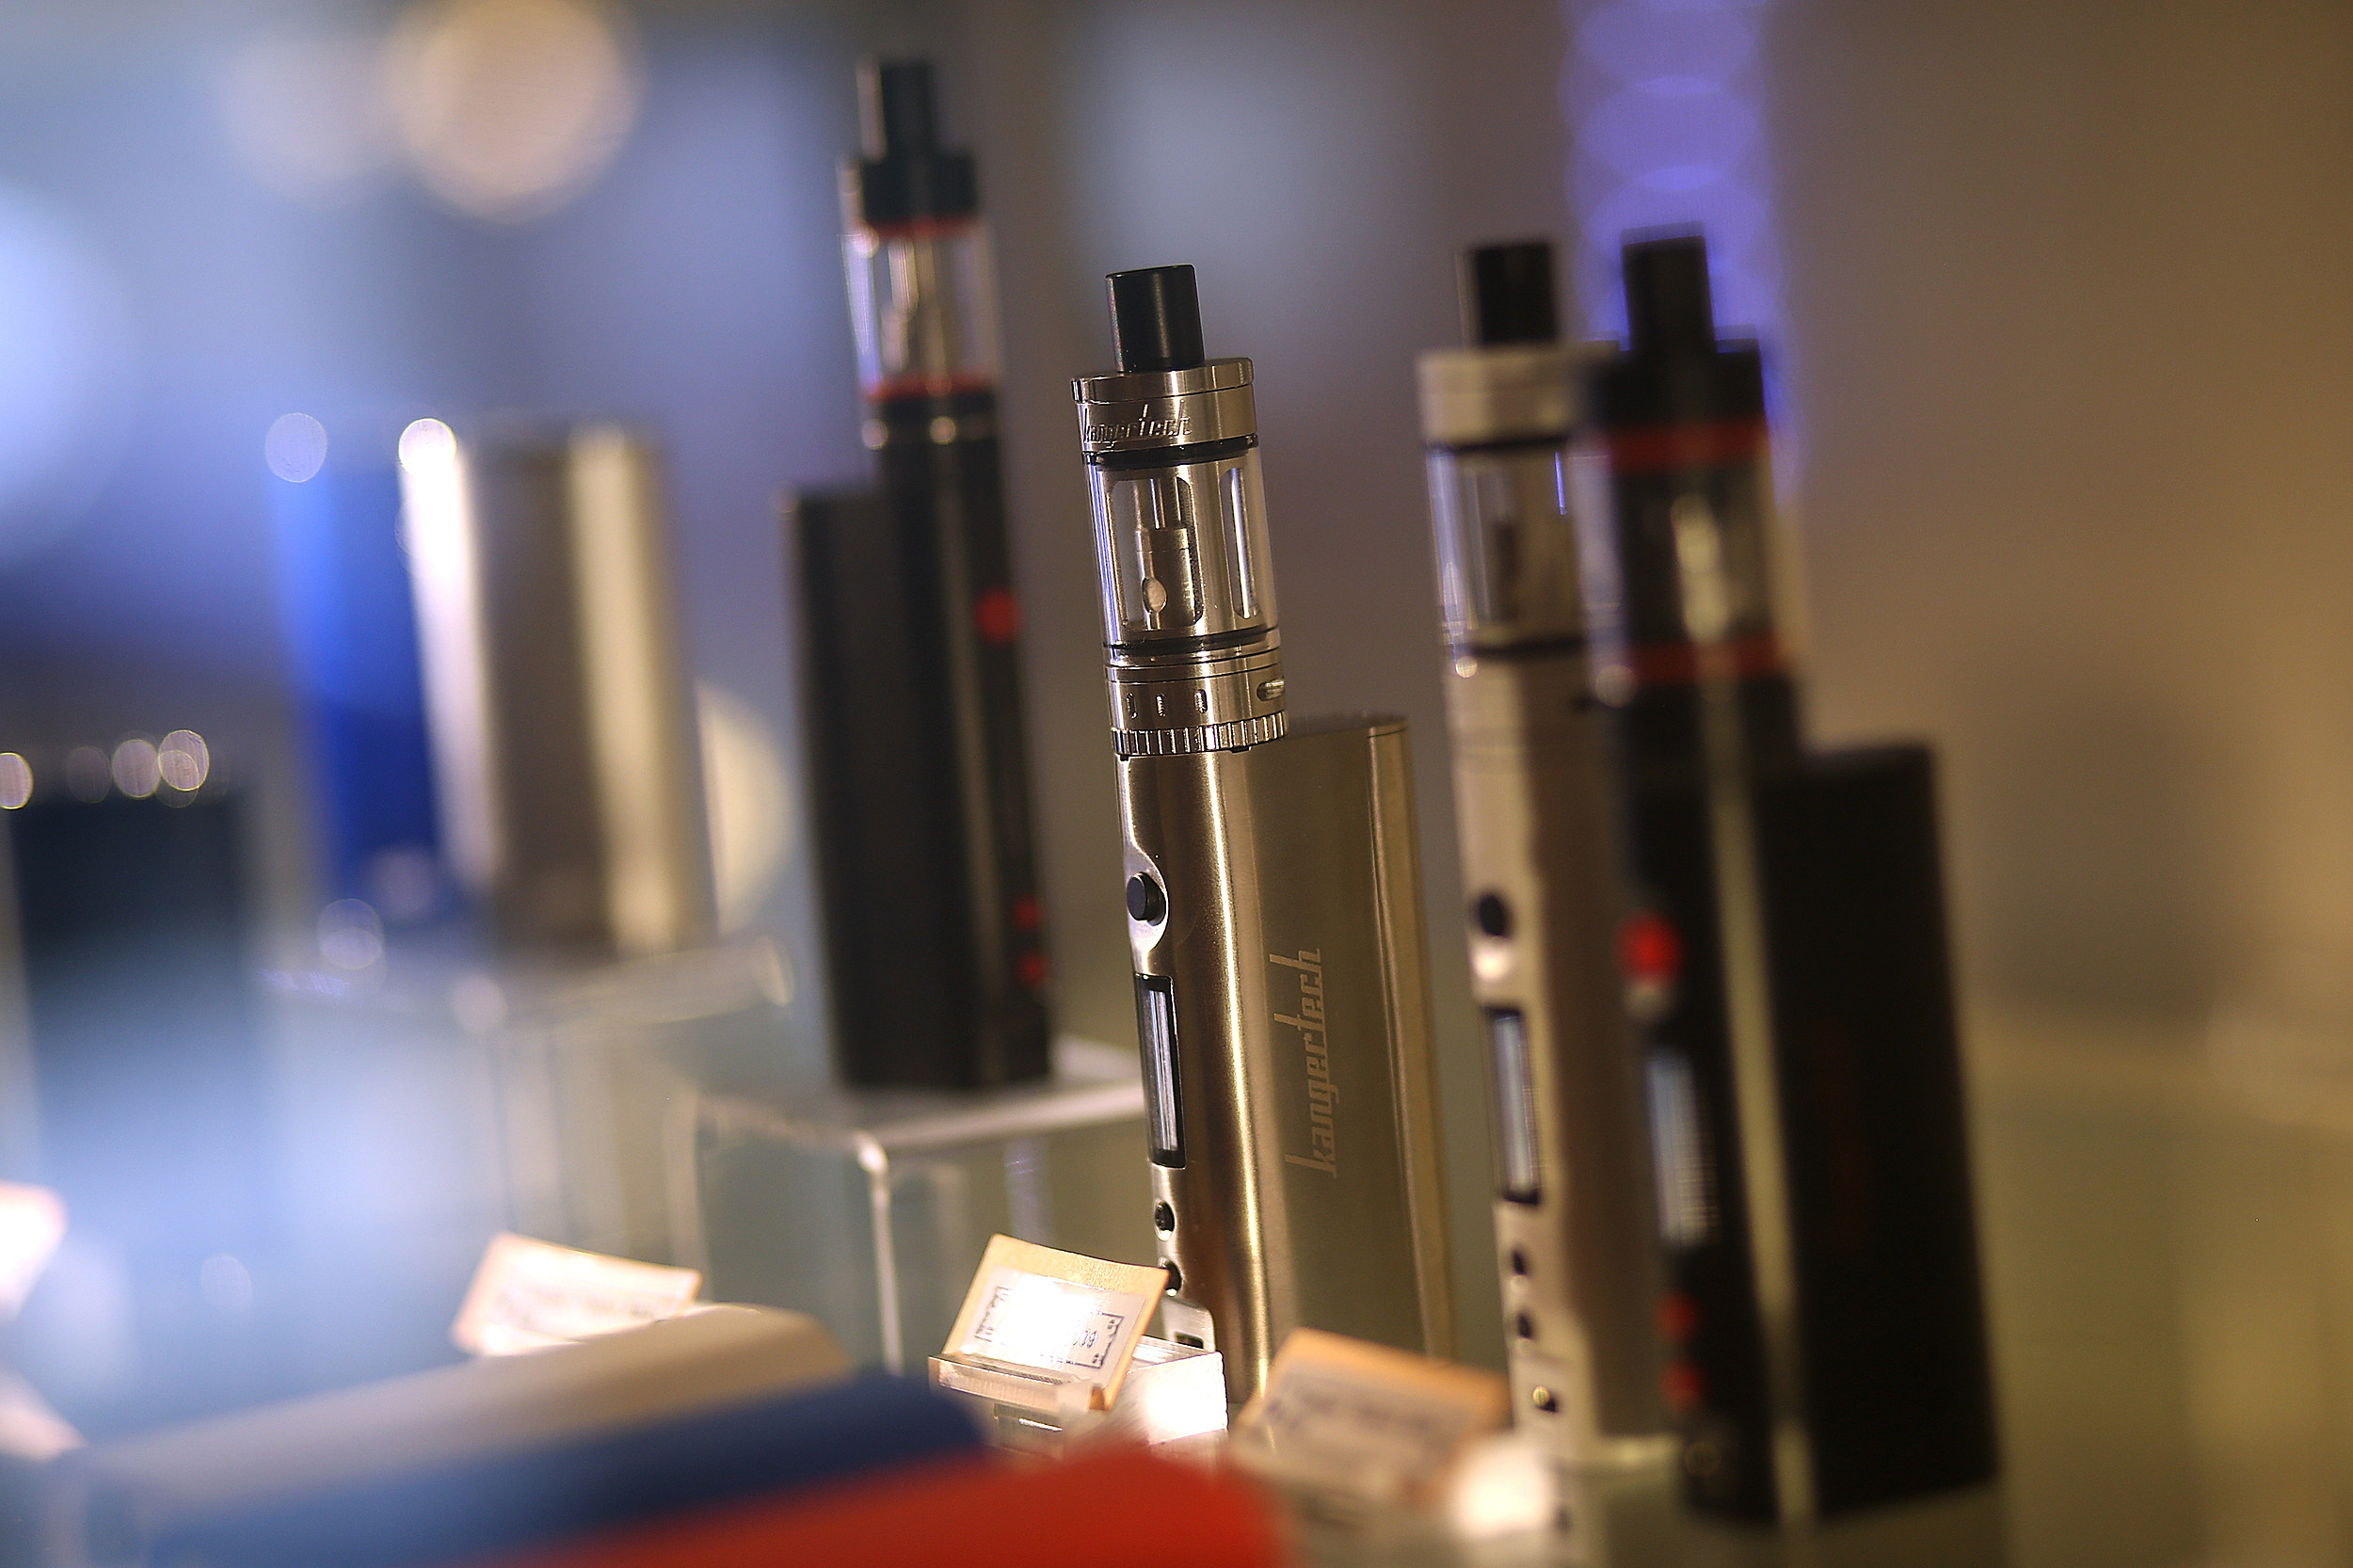 Buy electronic cigarettes Greenville sc